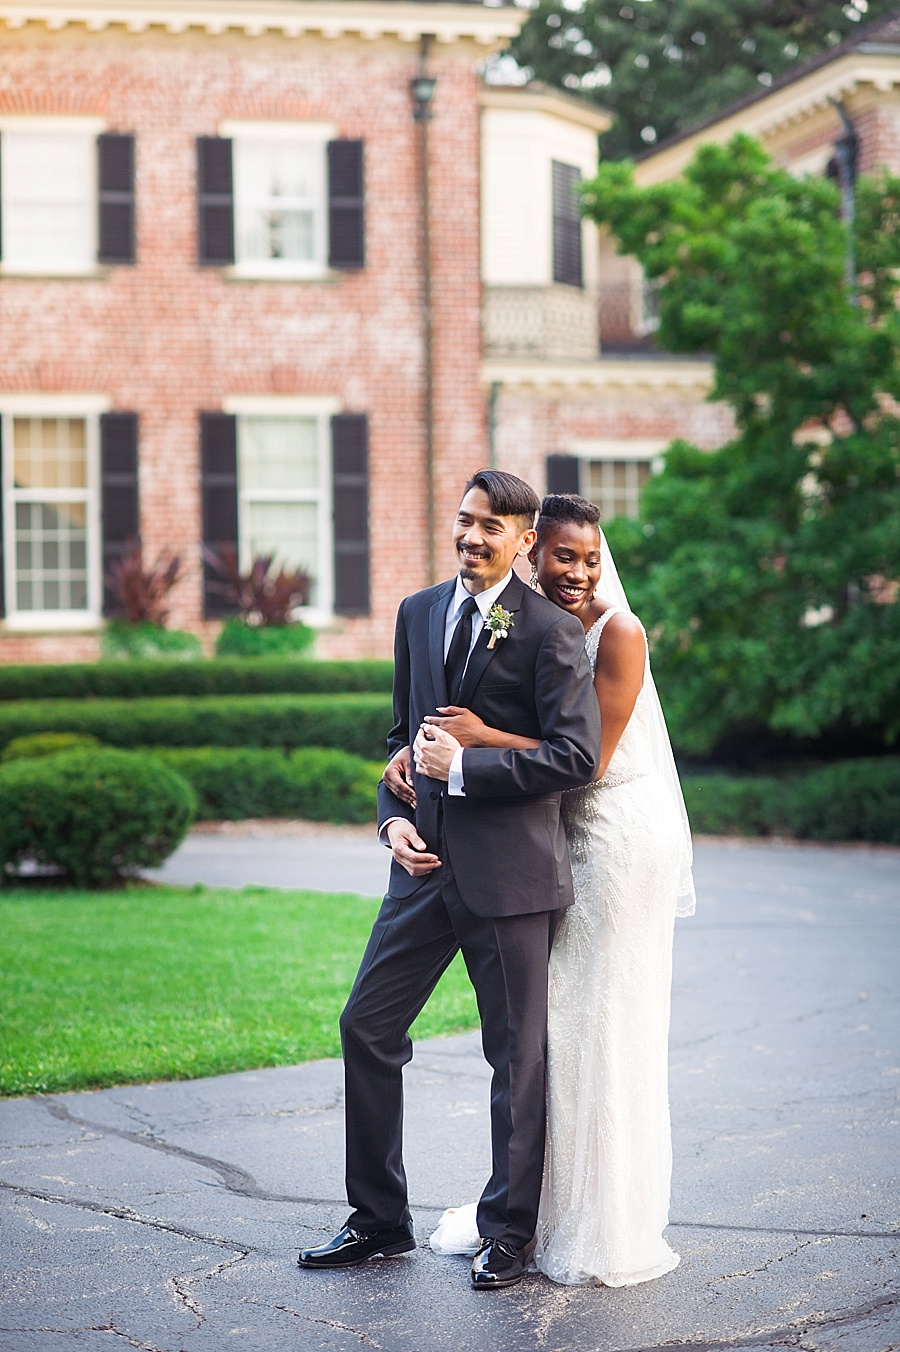 Severin-photography-multicultural-wedding-photographer-chicago-6198.jpg